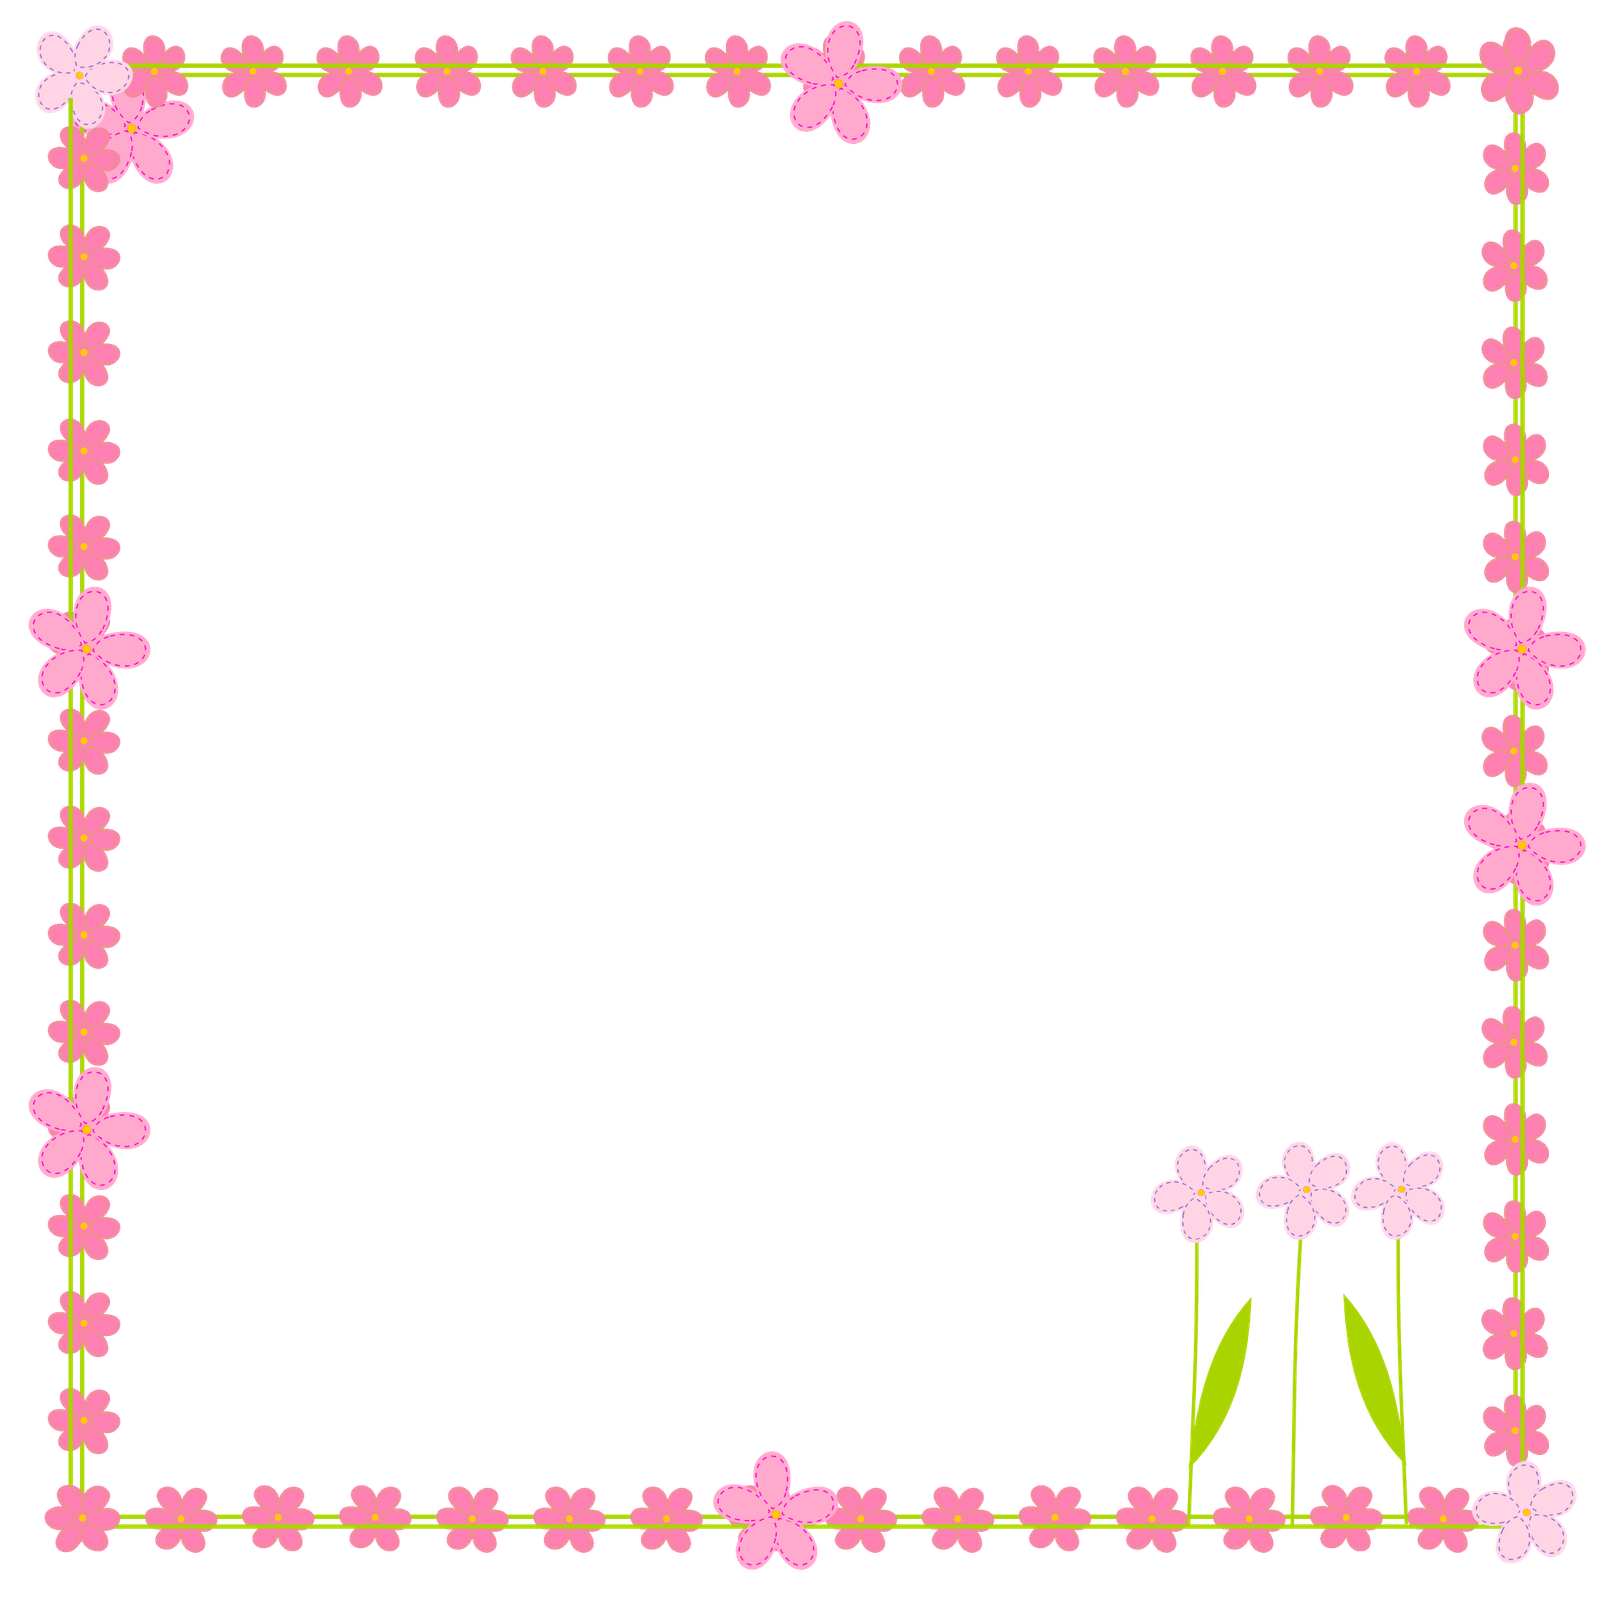 free digital flower border scrapbooking elements - Clipart ...